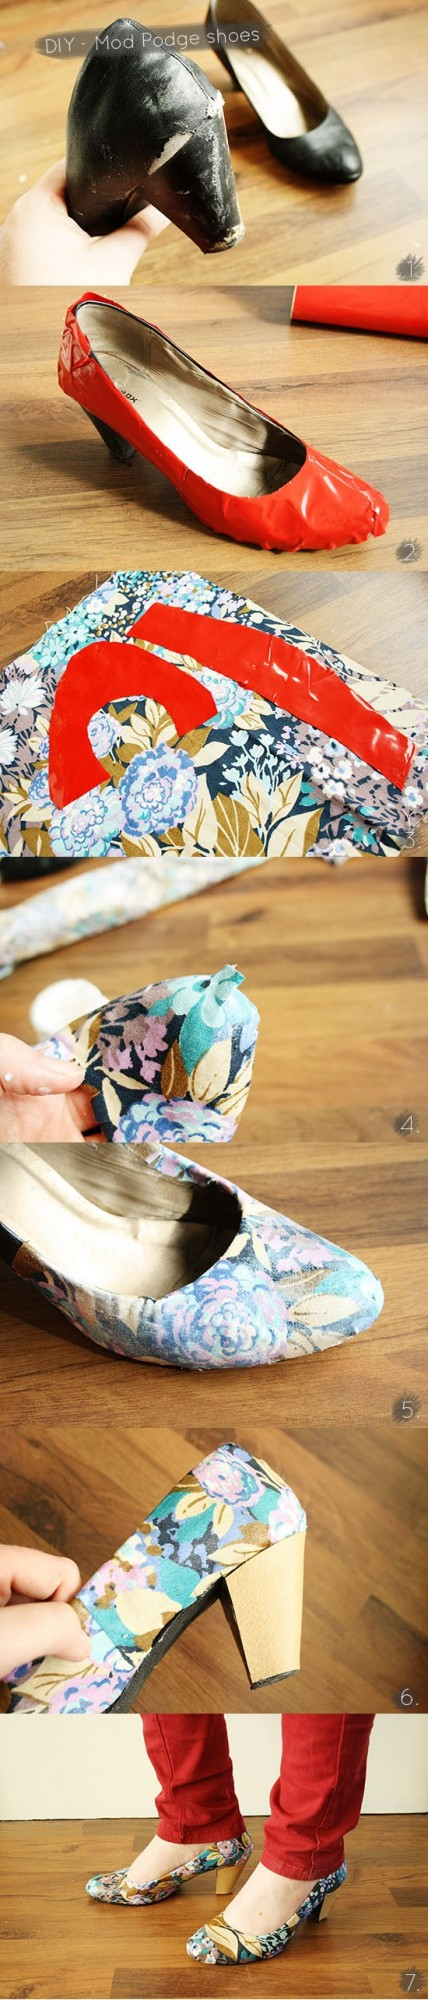 23 Useful DIY Ideas You Must Try